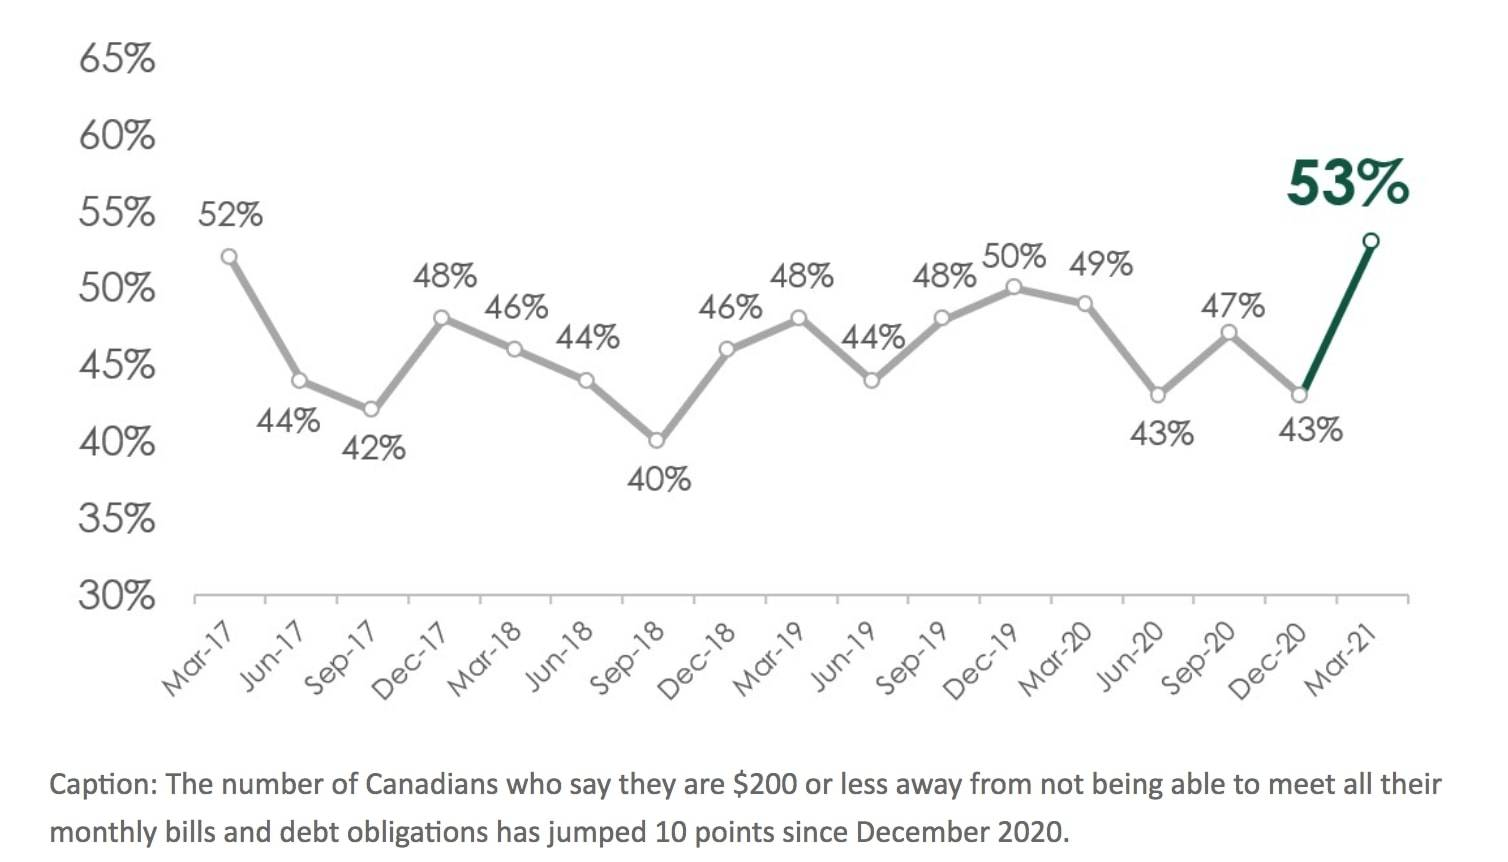 More than half (53%) of those polled in early March said they are $200 or less away from not being to meet their bills and debt payments each month, a jump from what was reported in December.